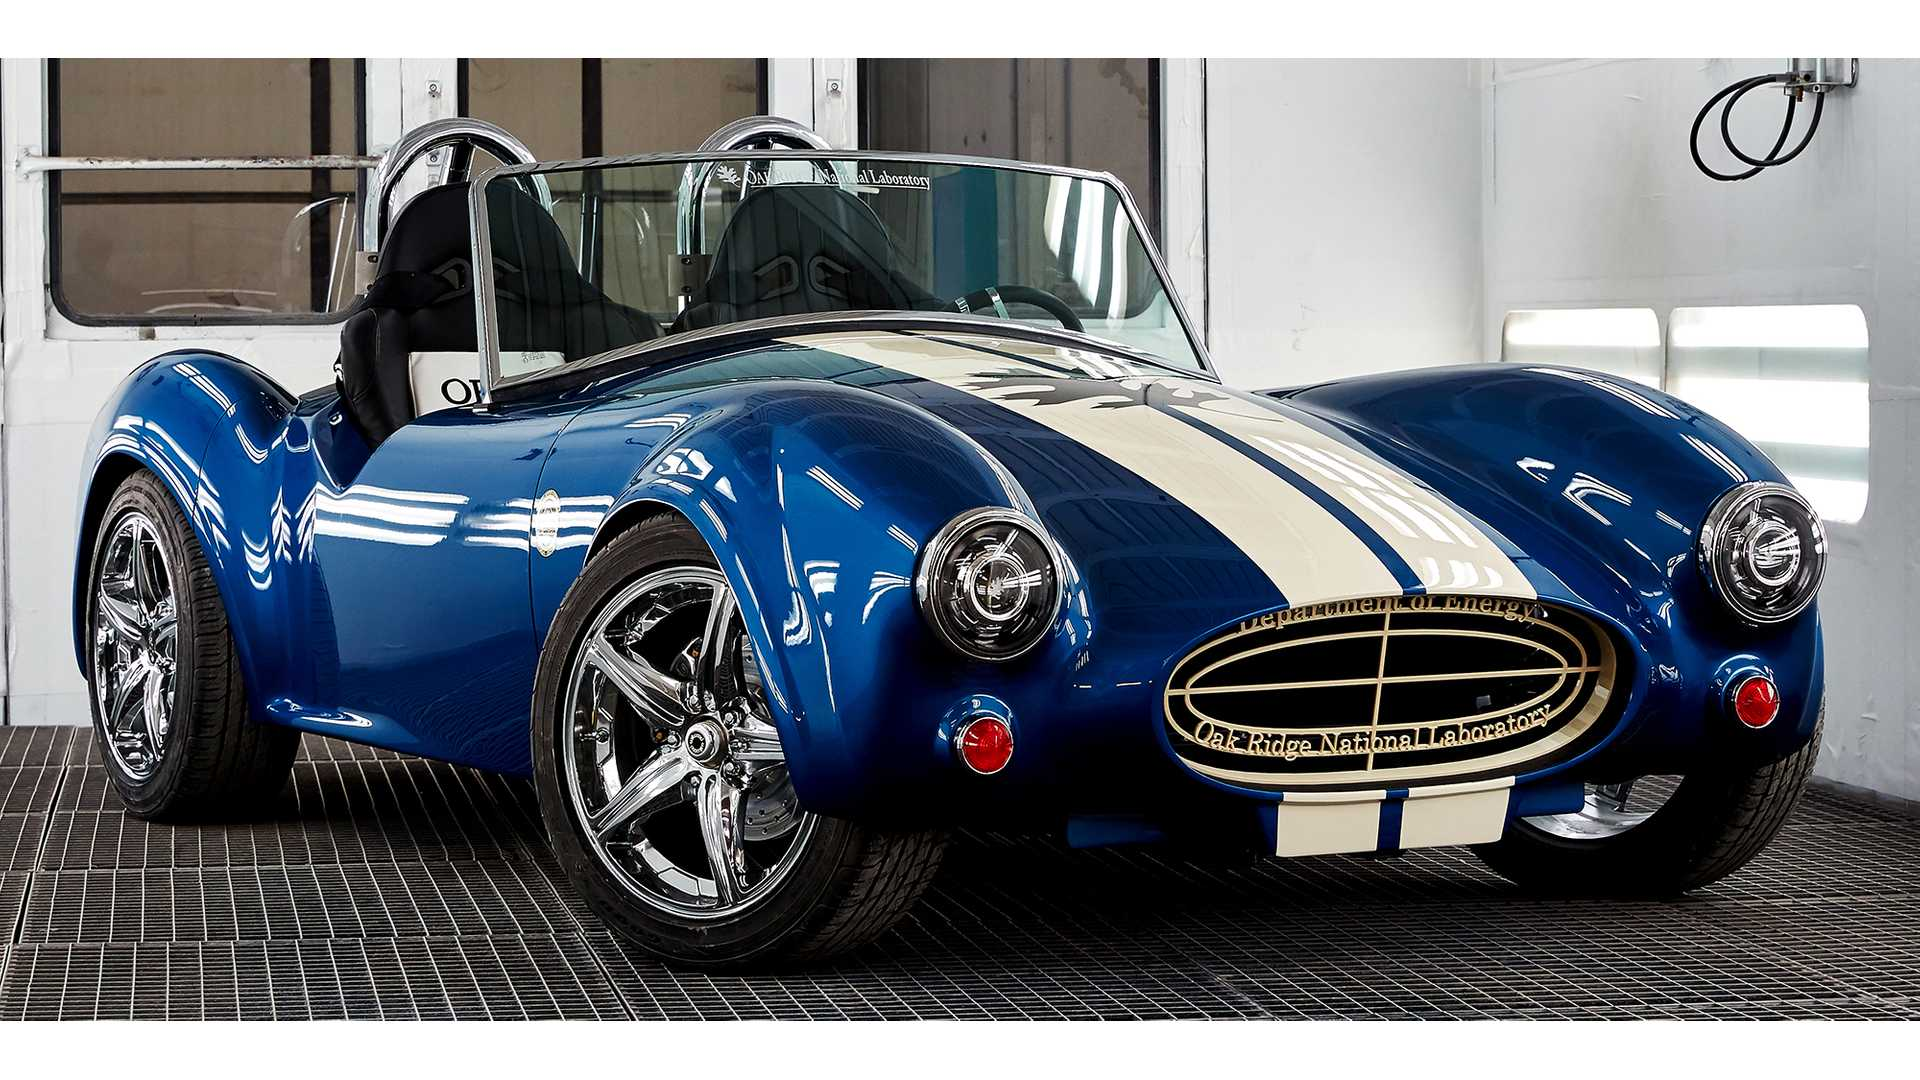 Tm4 Ed Electric Printed Shelby Cobra Replica On Display At 2017 Naias W Video